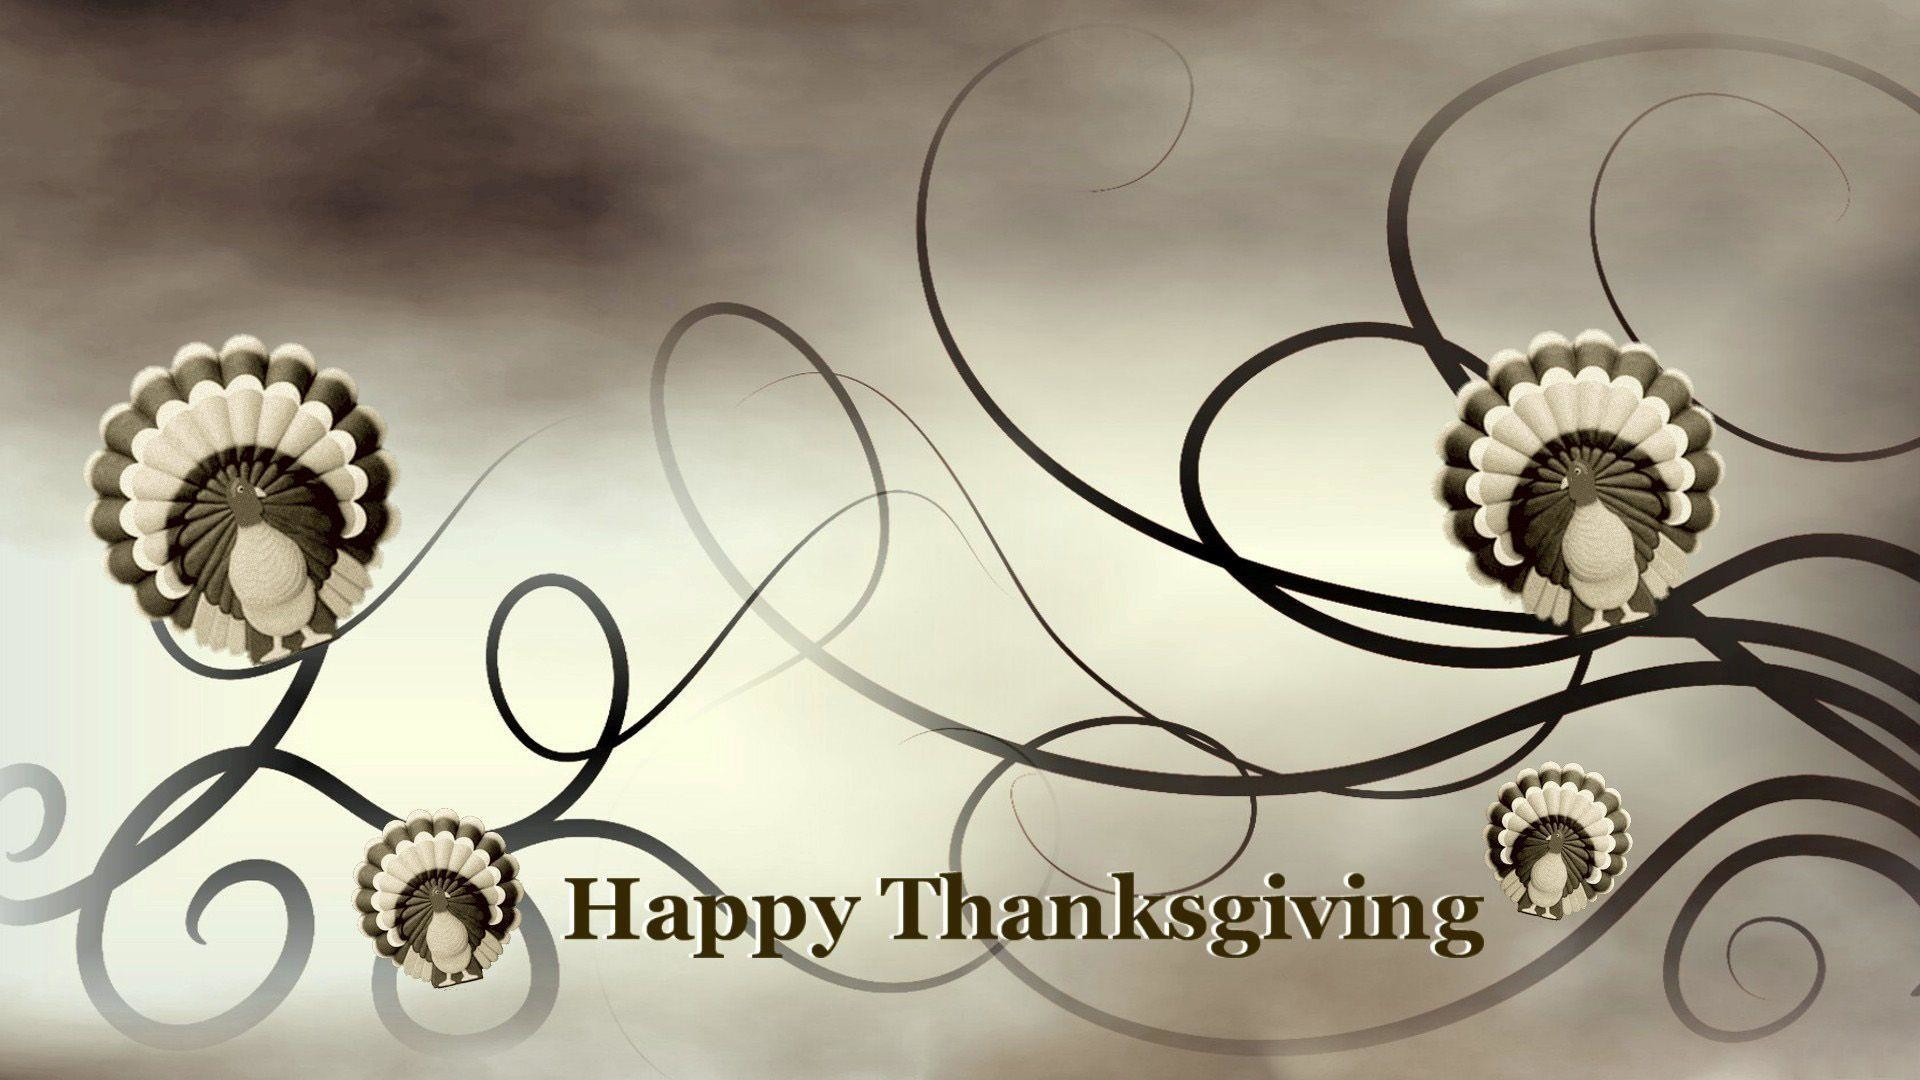 Cute Thanksgiving Desktop Wallpaper Images & Pictures – Becuo